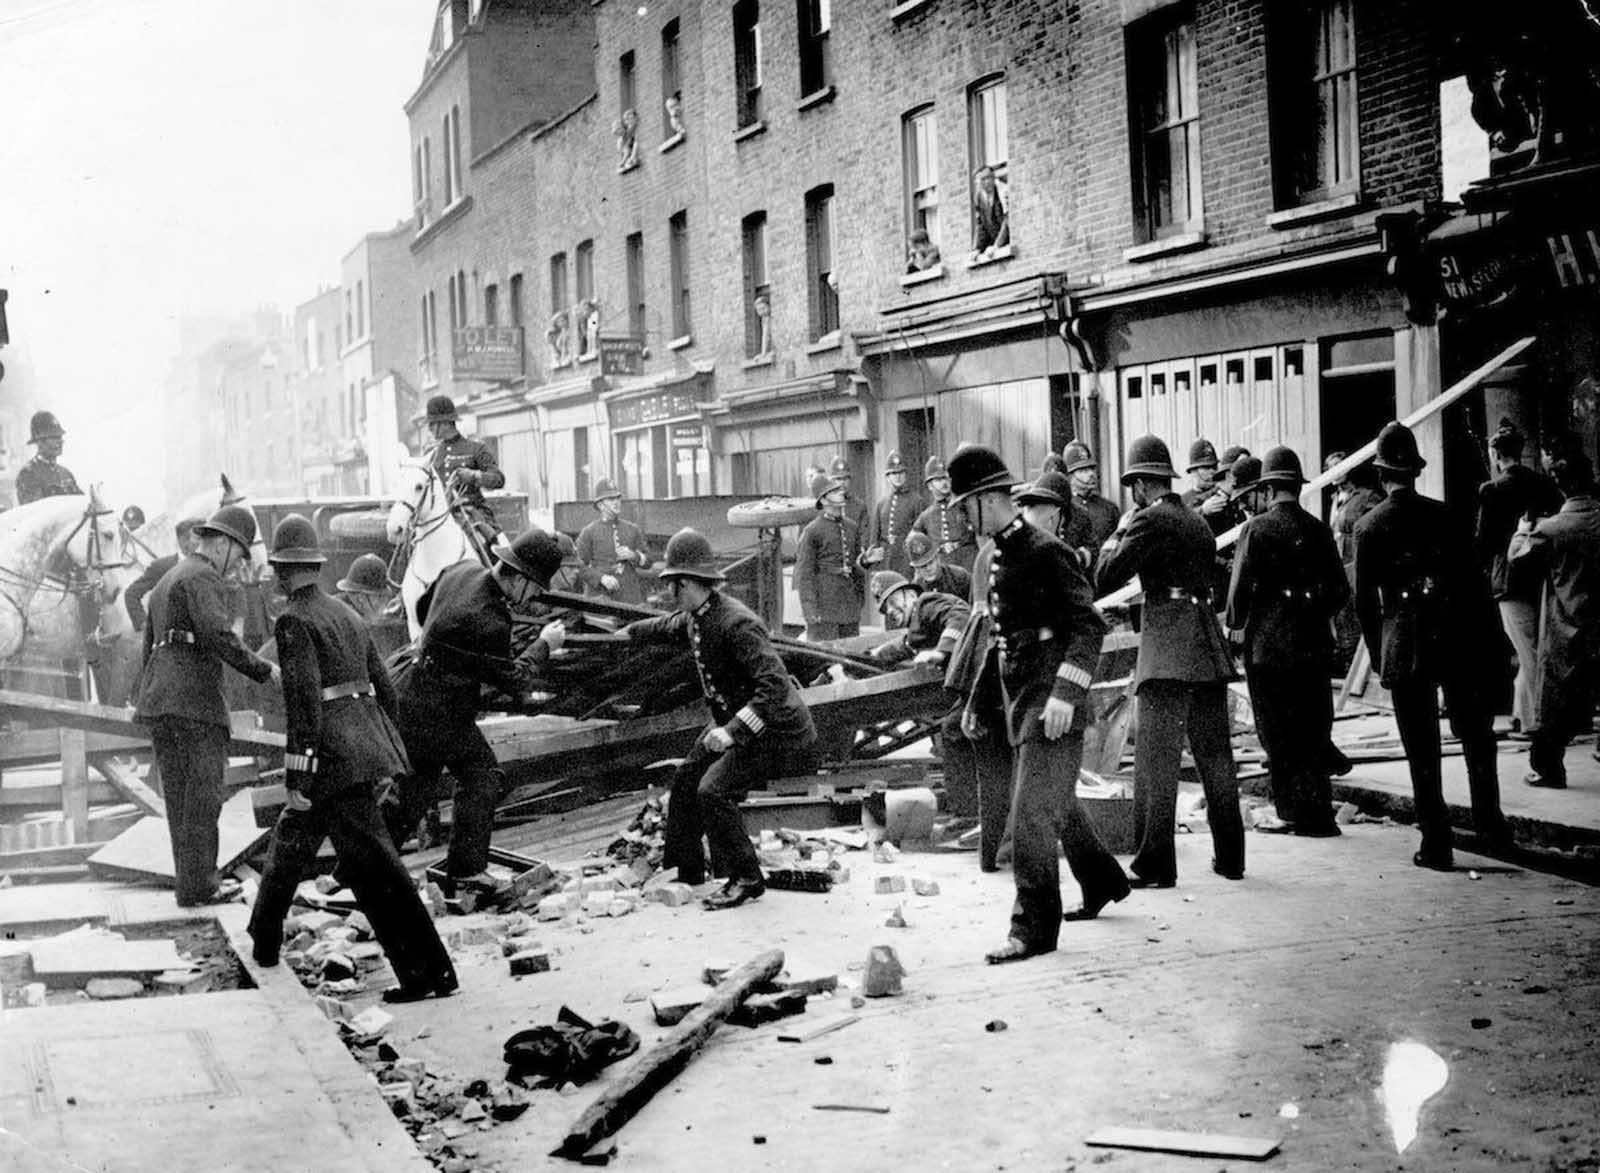 British policemen dismantle a barrier near Mark Lane, London, to make way for a march by supporters of the leader of the British Union of Fascists Oswald Mosley. The barricade was constructed by members of the Communist Party. 1936.